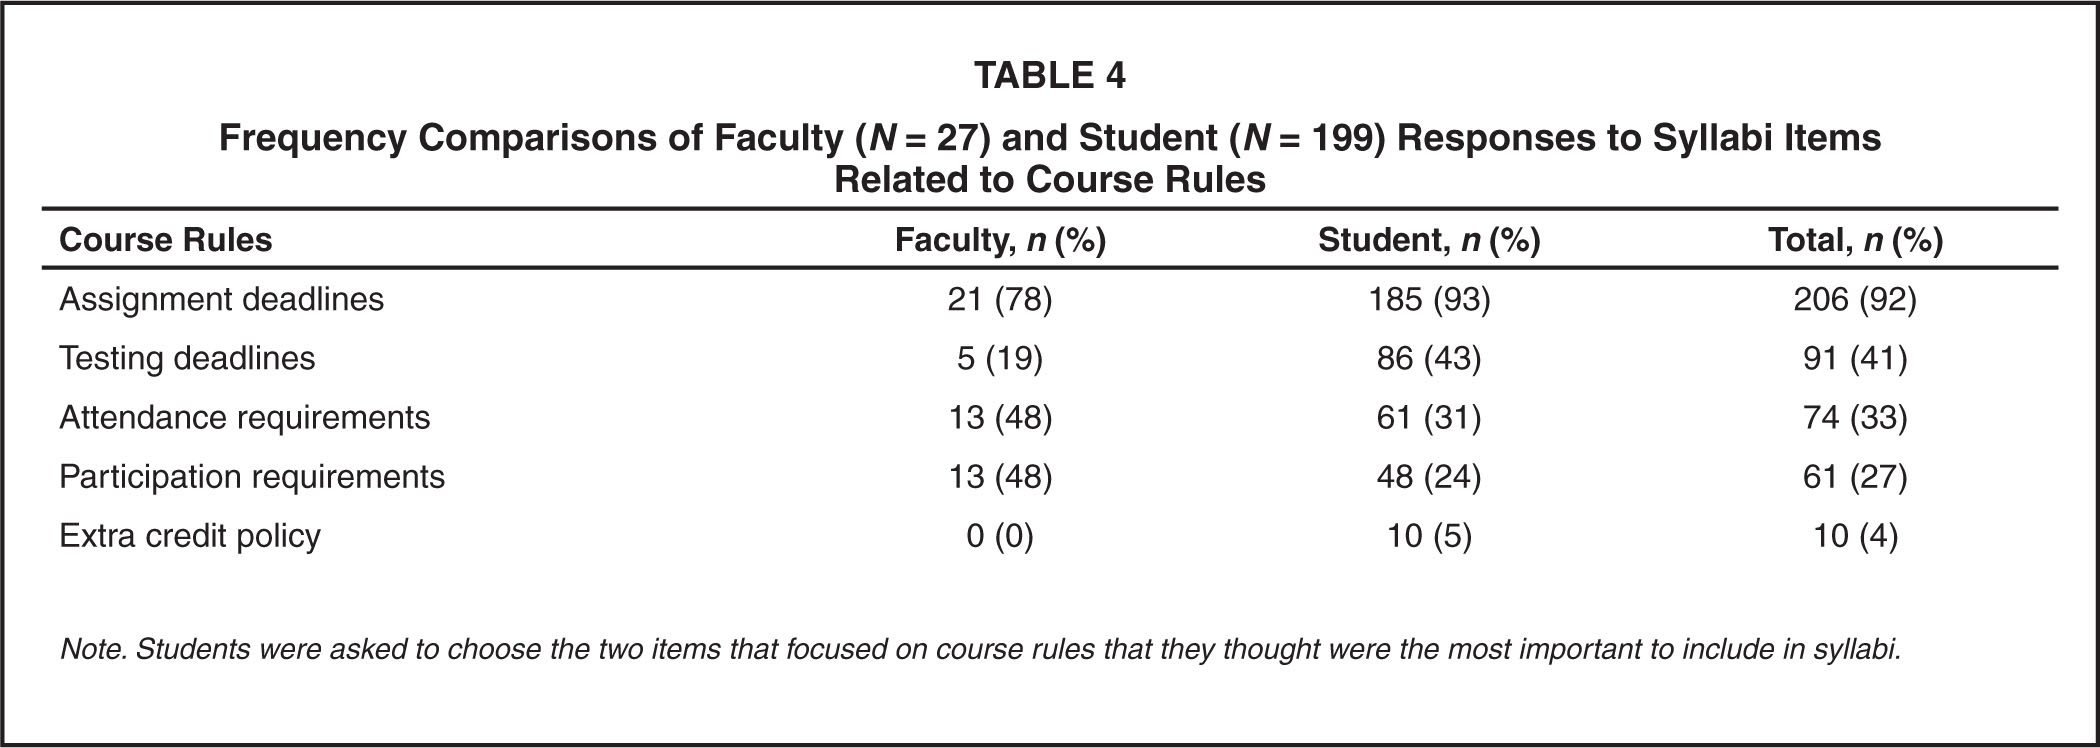 Frequency Comparisons of Faculty (N = 27) and Student (N = 199) Responses to Syllabi Items Related to Course Rules